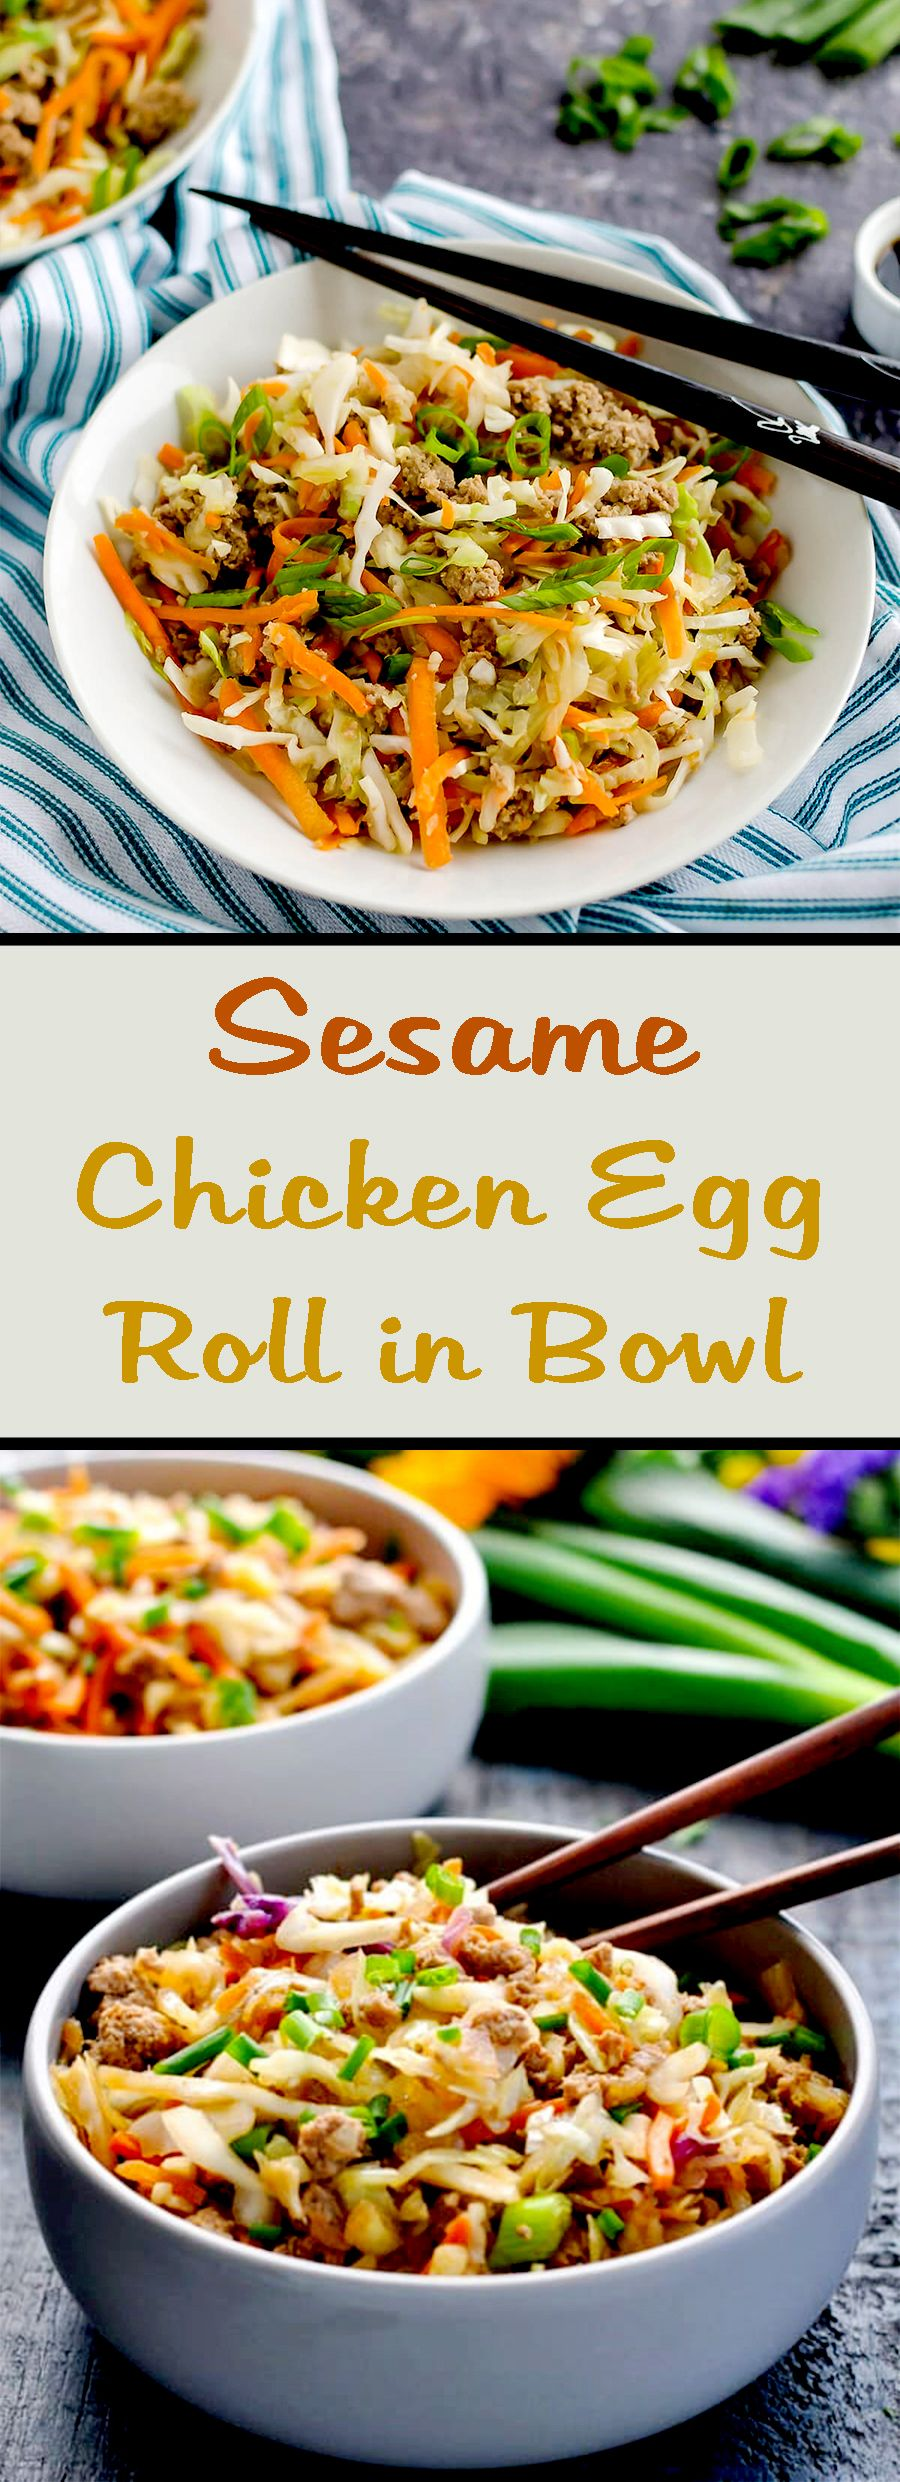 Sesame Chicken Egg Roll in Bowl